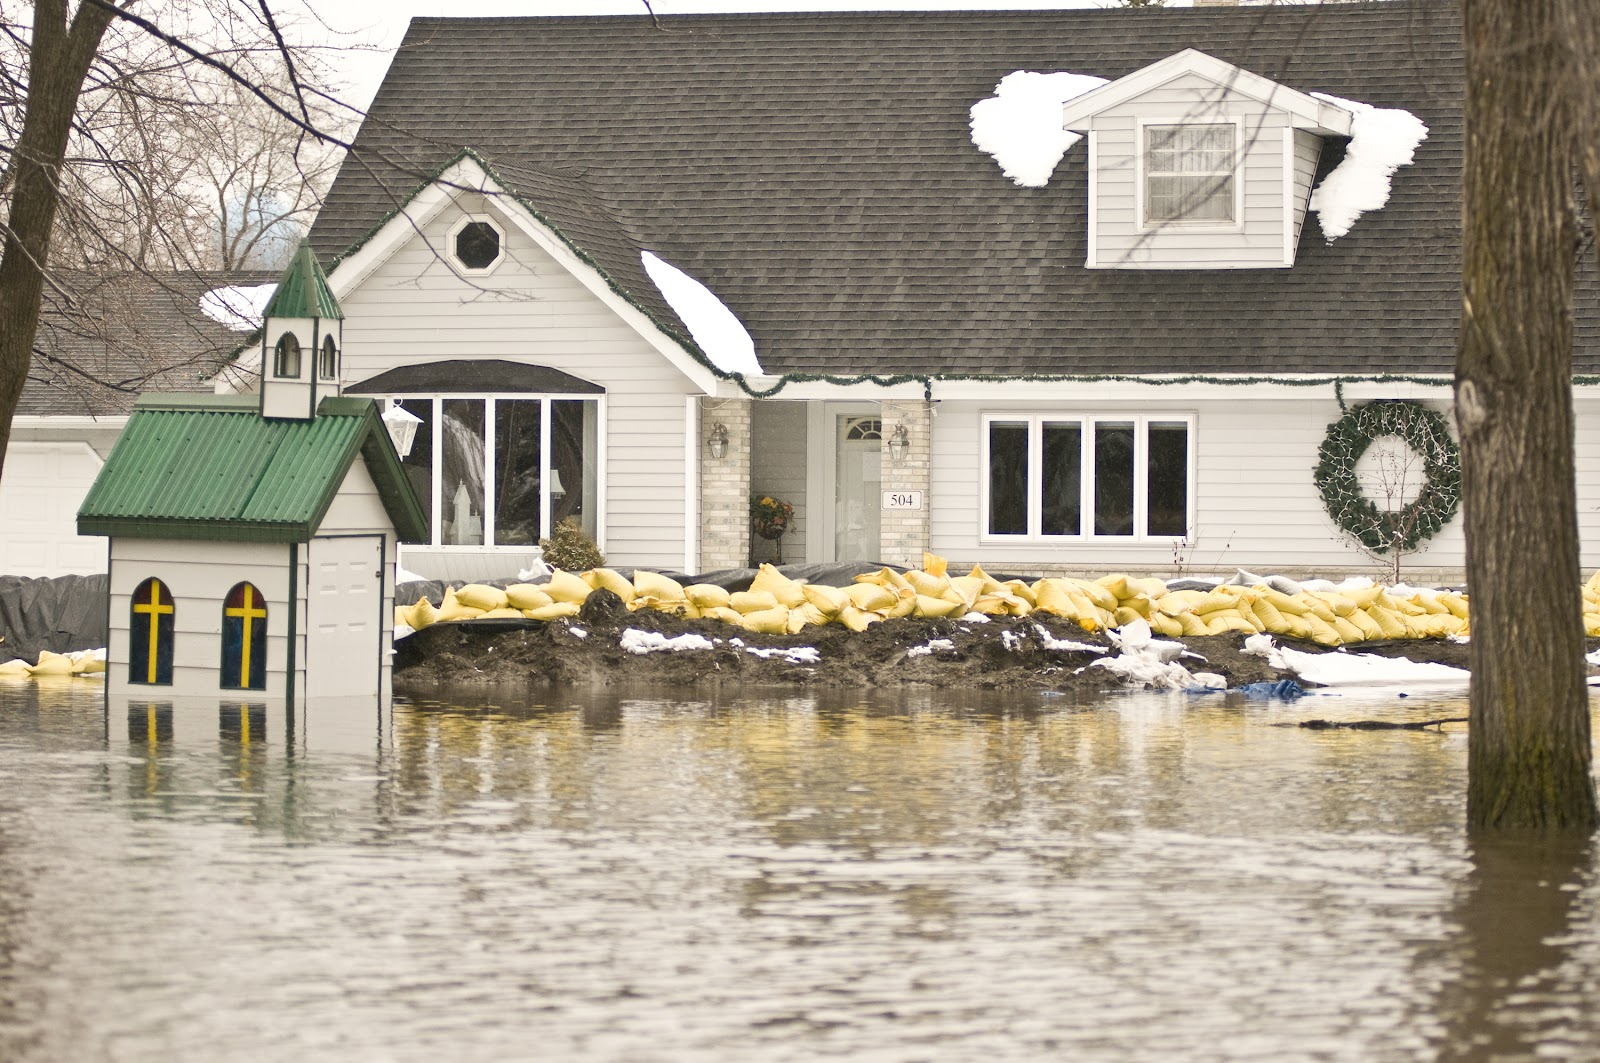 FEMA_-_40371_-_Home_protected_from_flood_waters_by_sand_bags_in_Minnesota.jpg